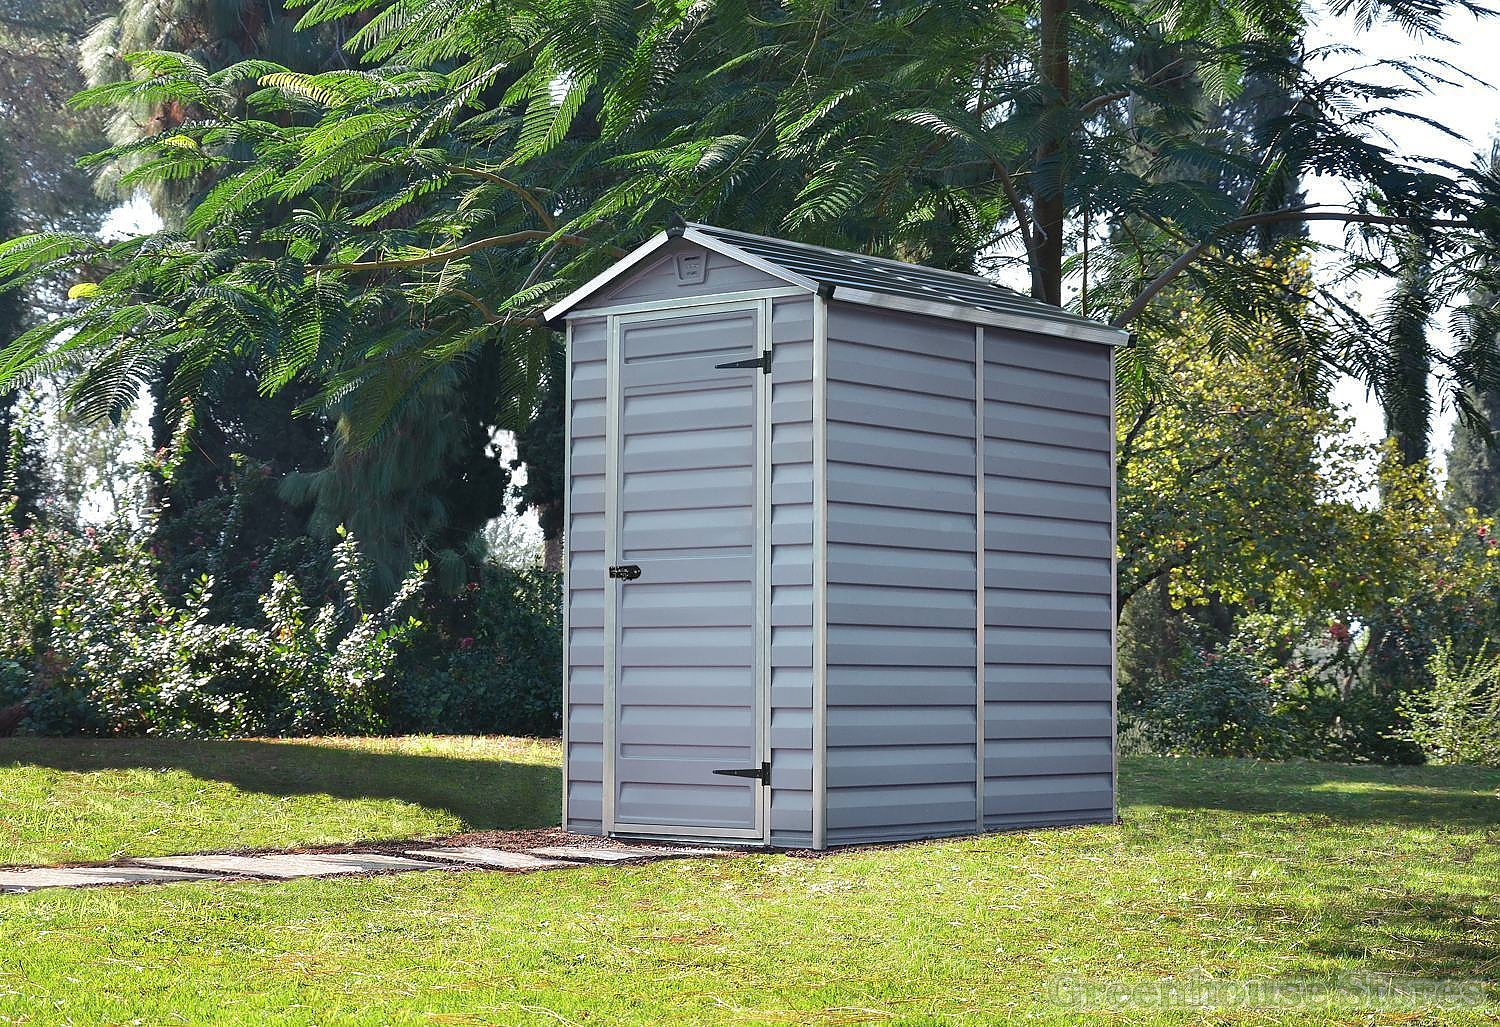 Palram 4x6 plastic skylight grey shed greenhouse stores for Garden shed 4x6